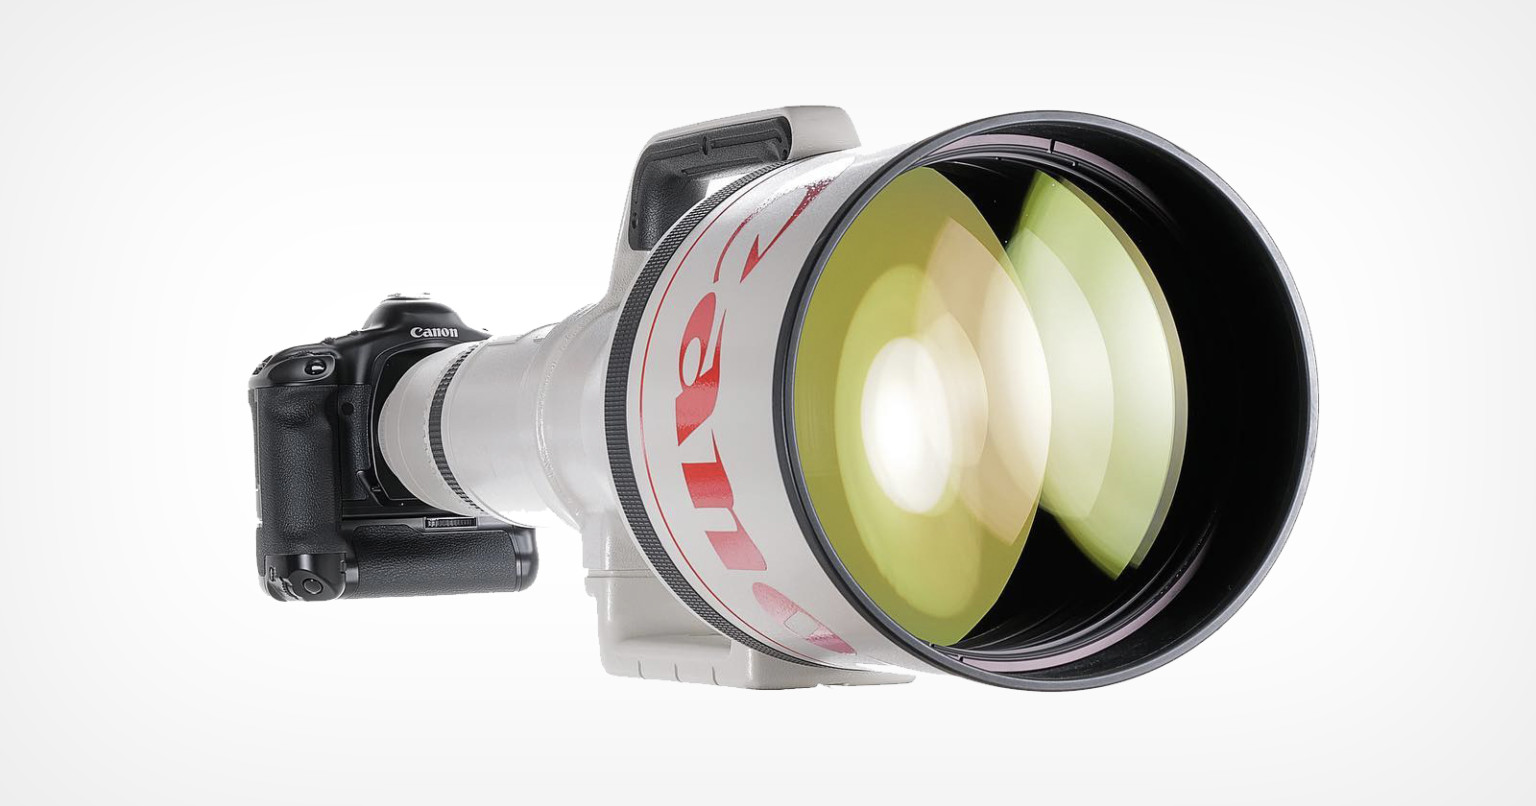 Canon-1200mm-f5.6-Sells-for-580000-Most-Ever-for-a-Lens-1536x806